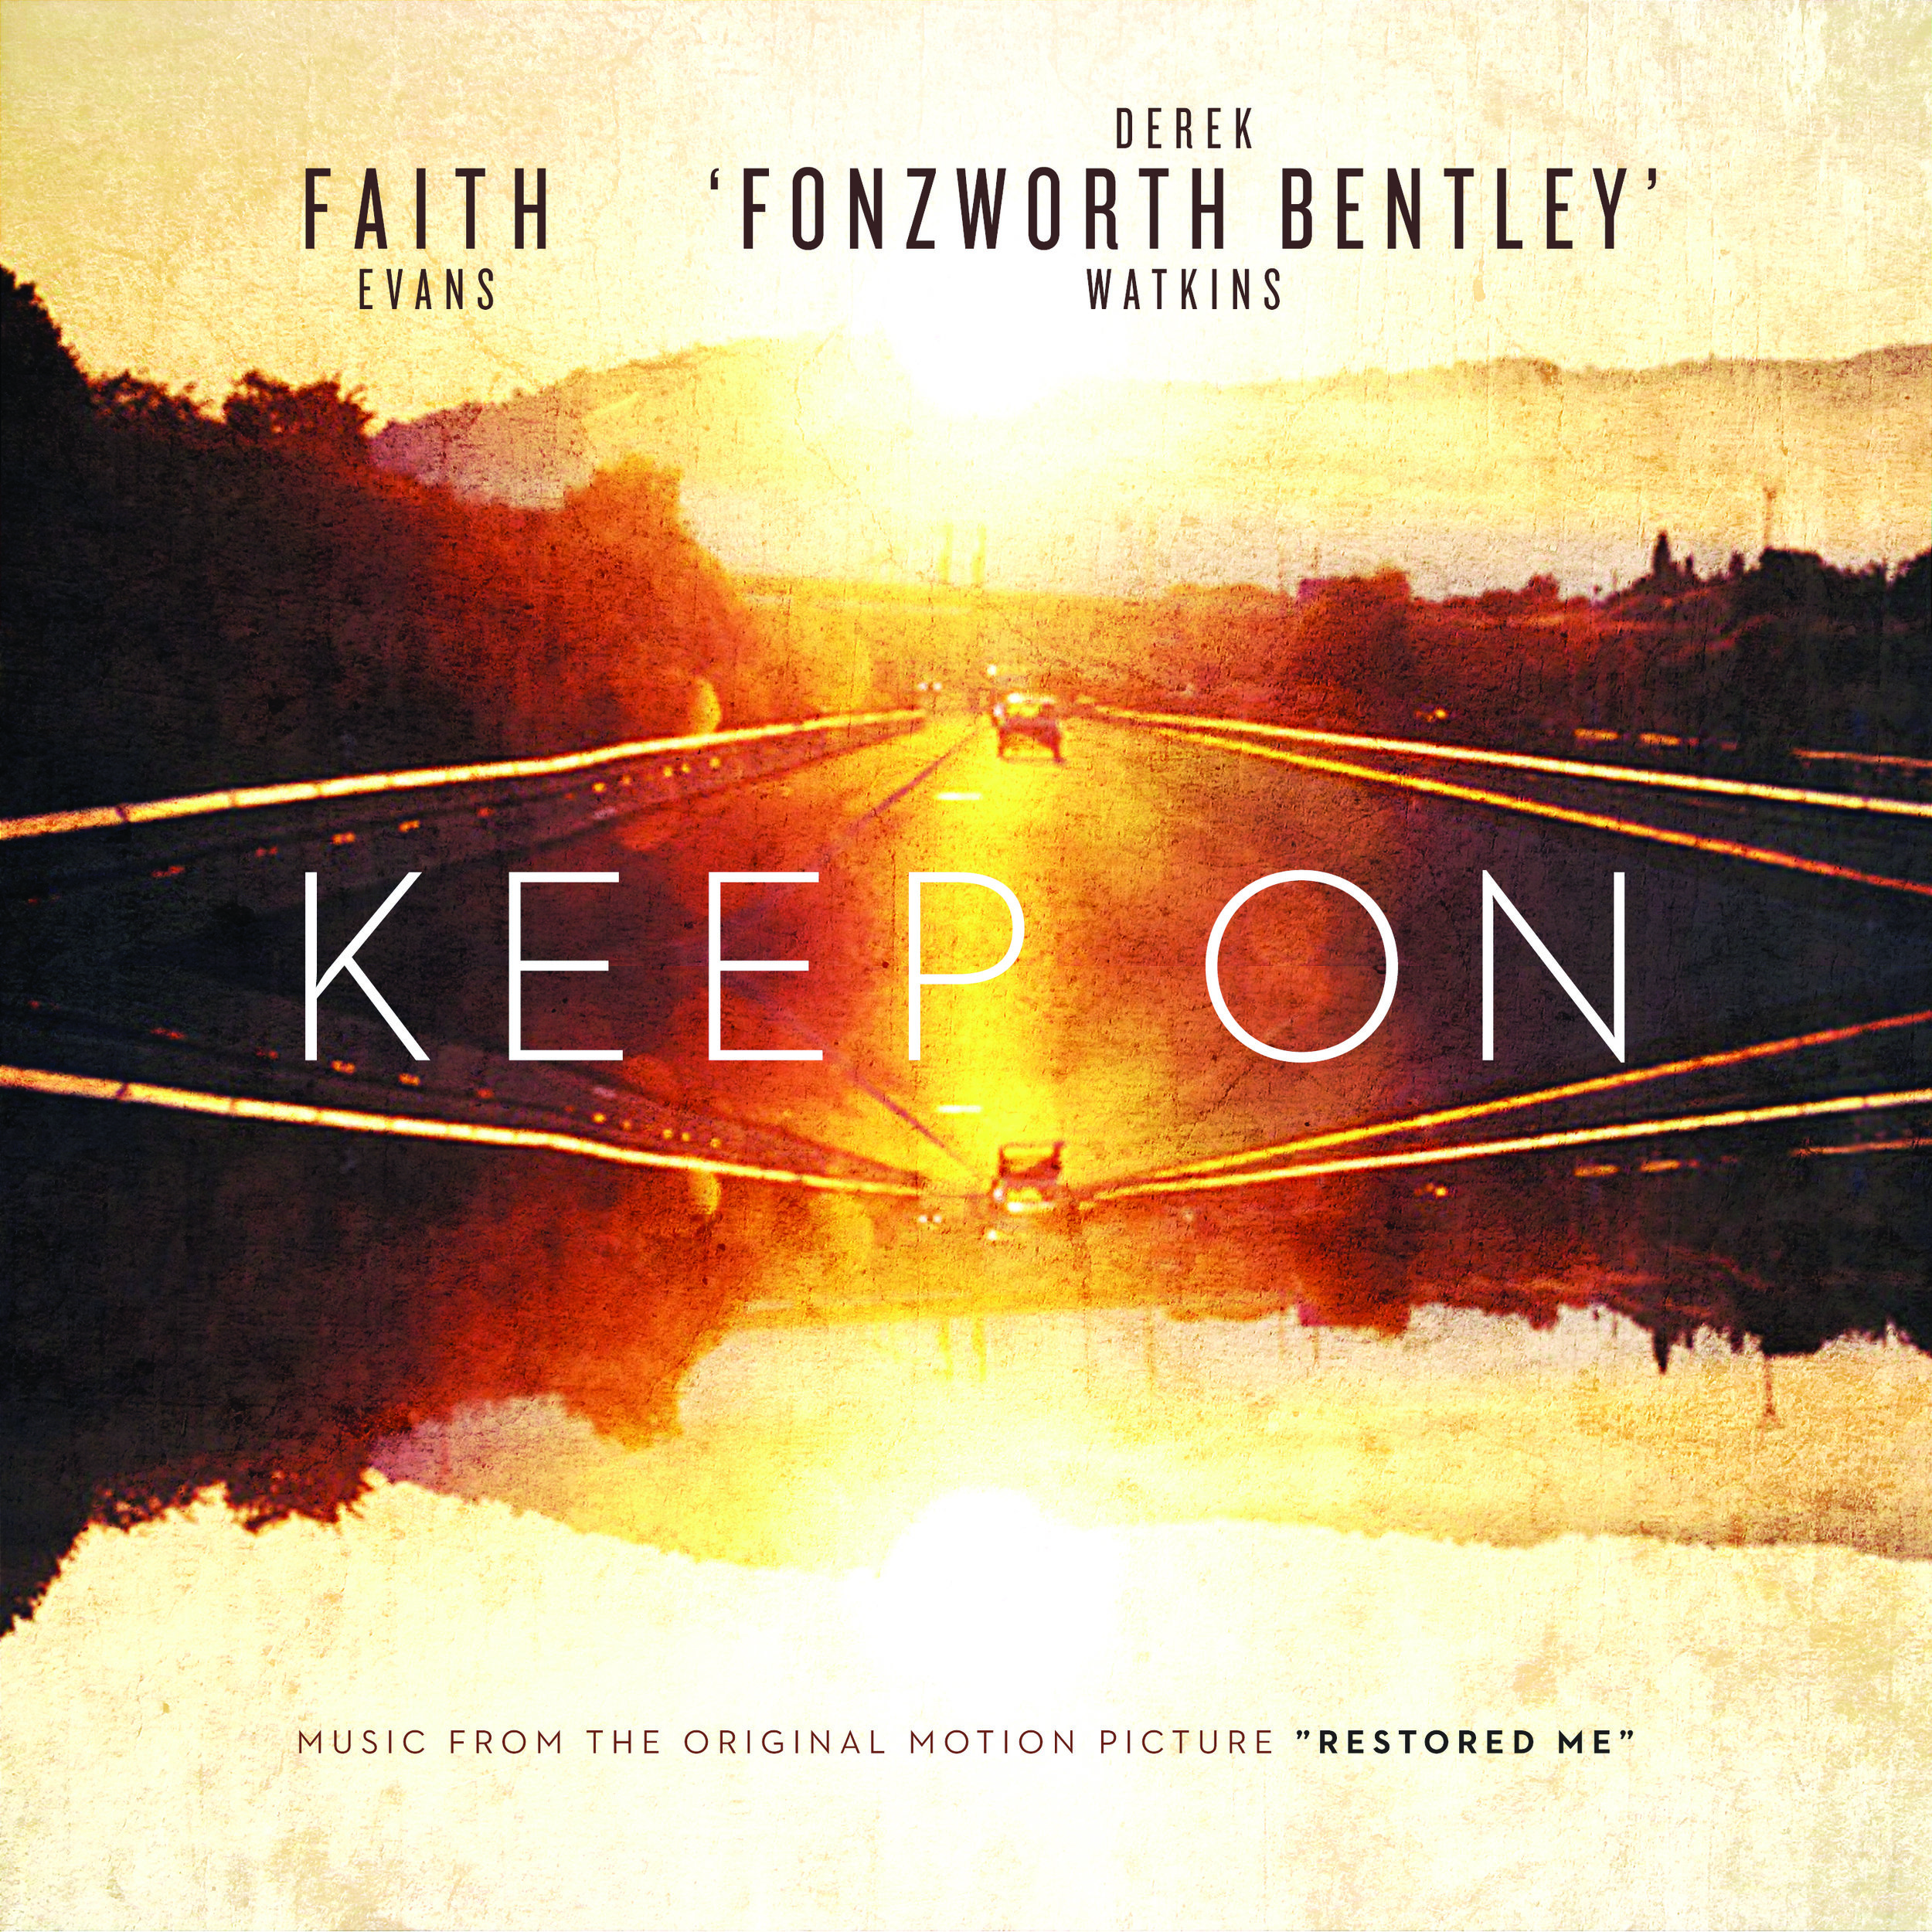 "Faith Evans ft. Derek ""Fonzworth Bentley"" Watkins - Keep on (Written by Chel Strong, Hilton Wright, Faith Evans, Derek Fonzworth Bentley"" Watkins, Jamison Hollister)"